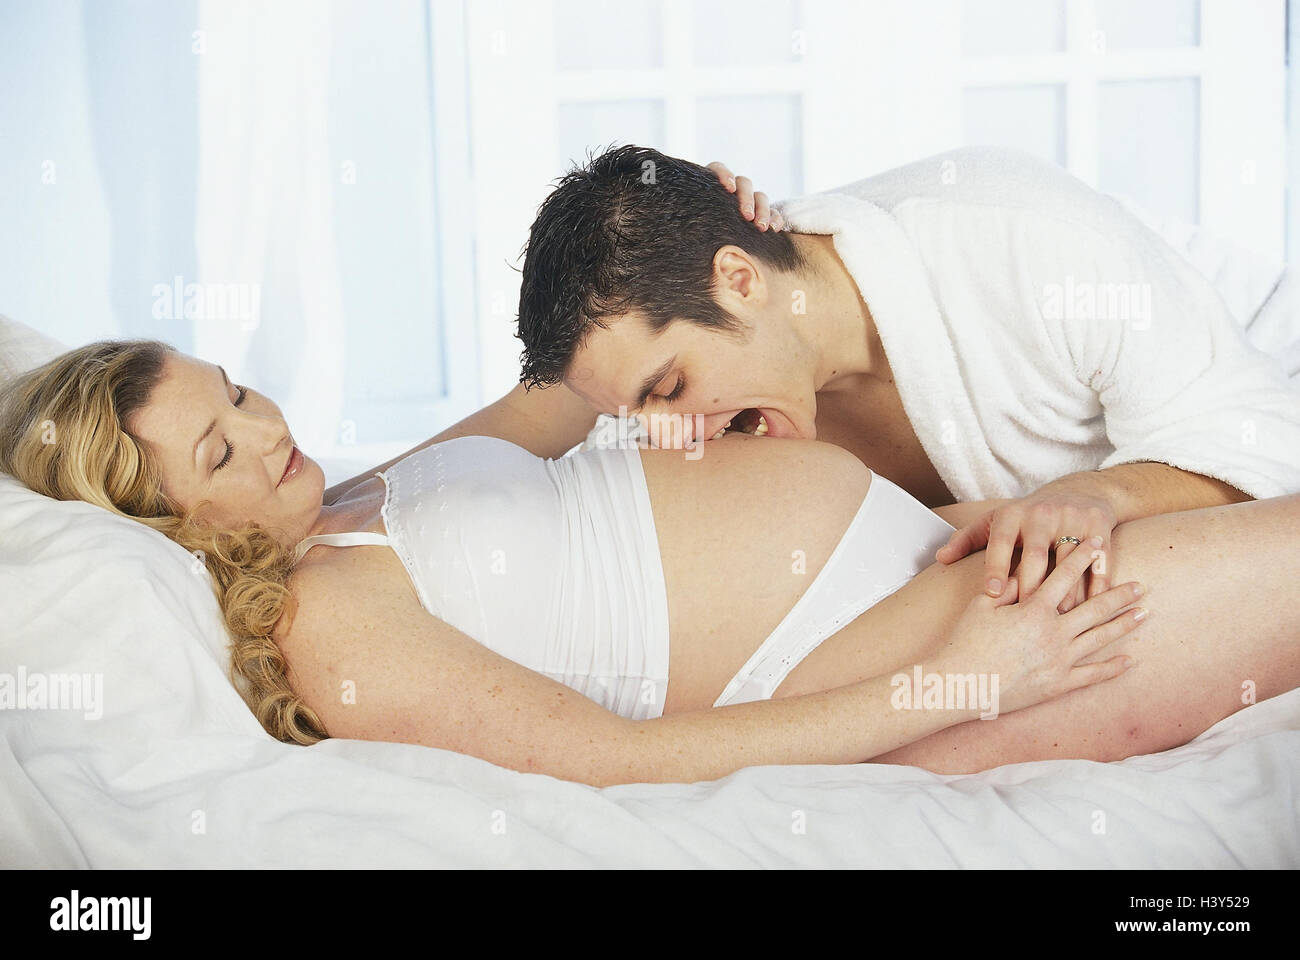 where to touch a woman in bed